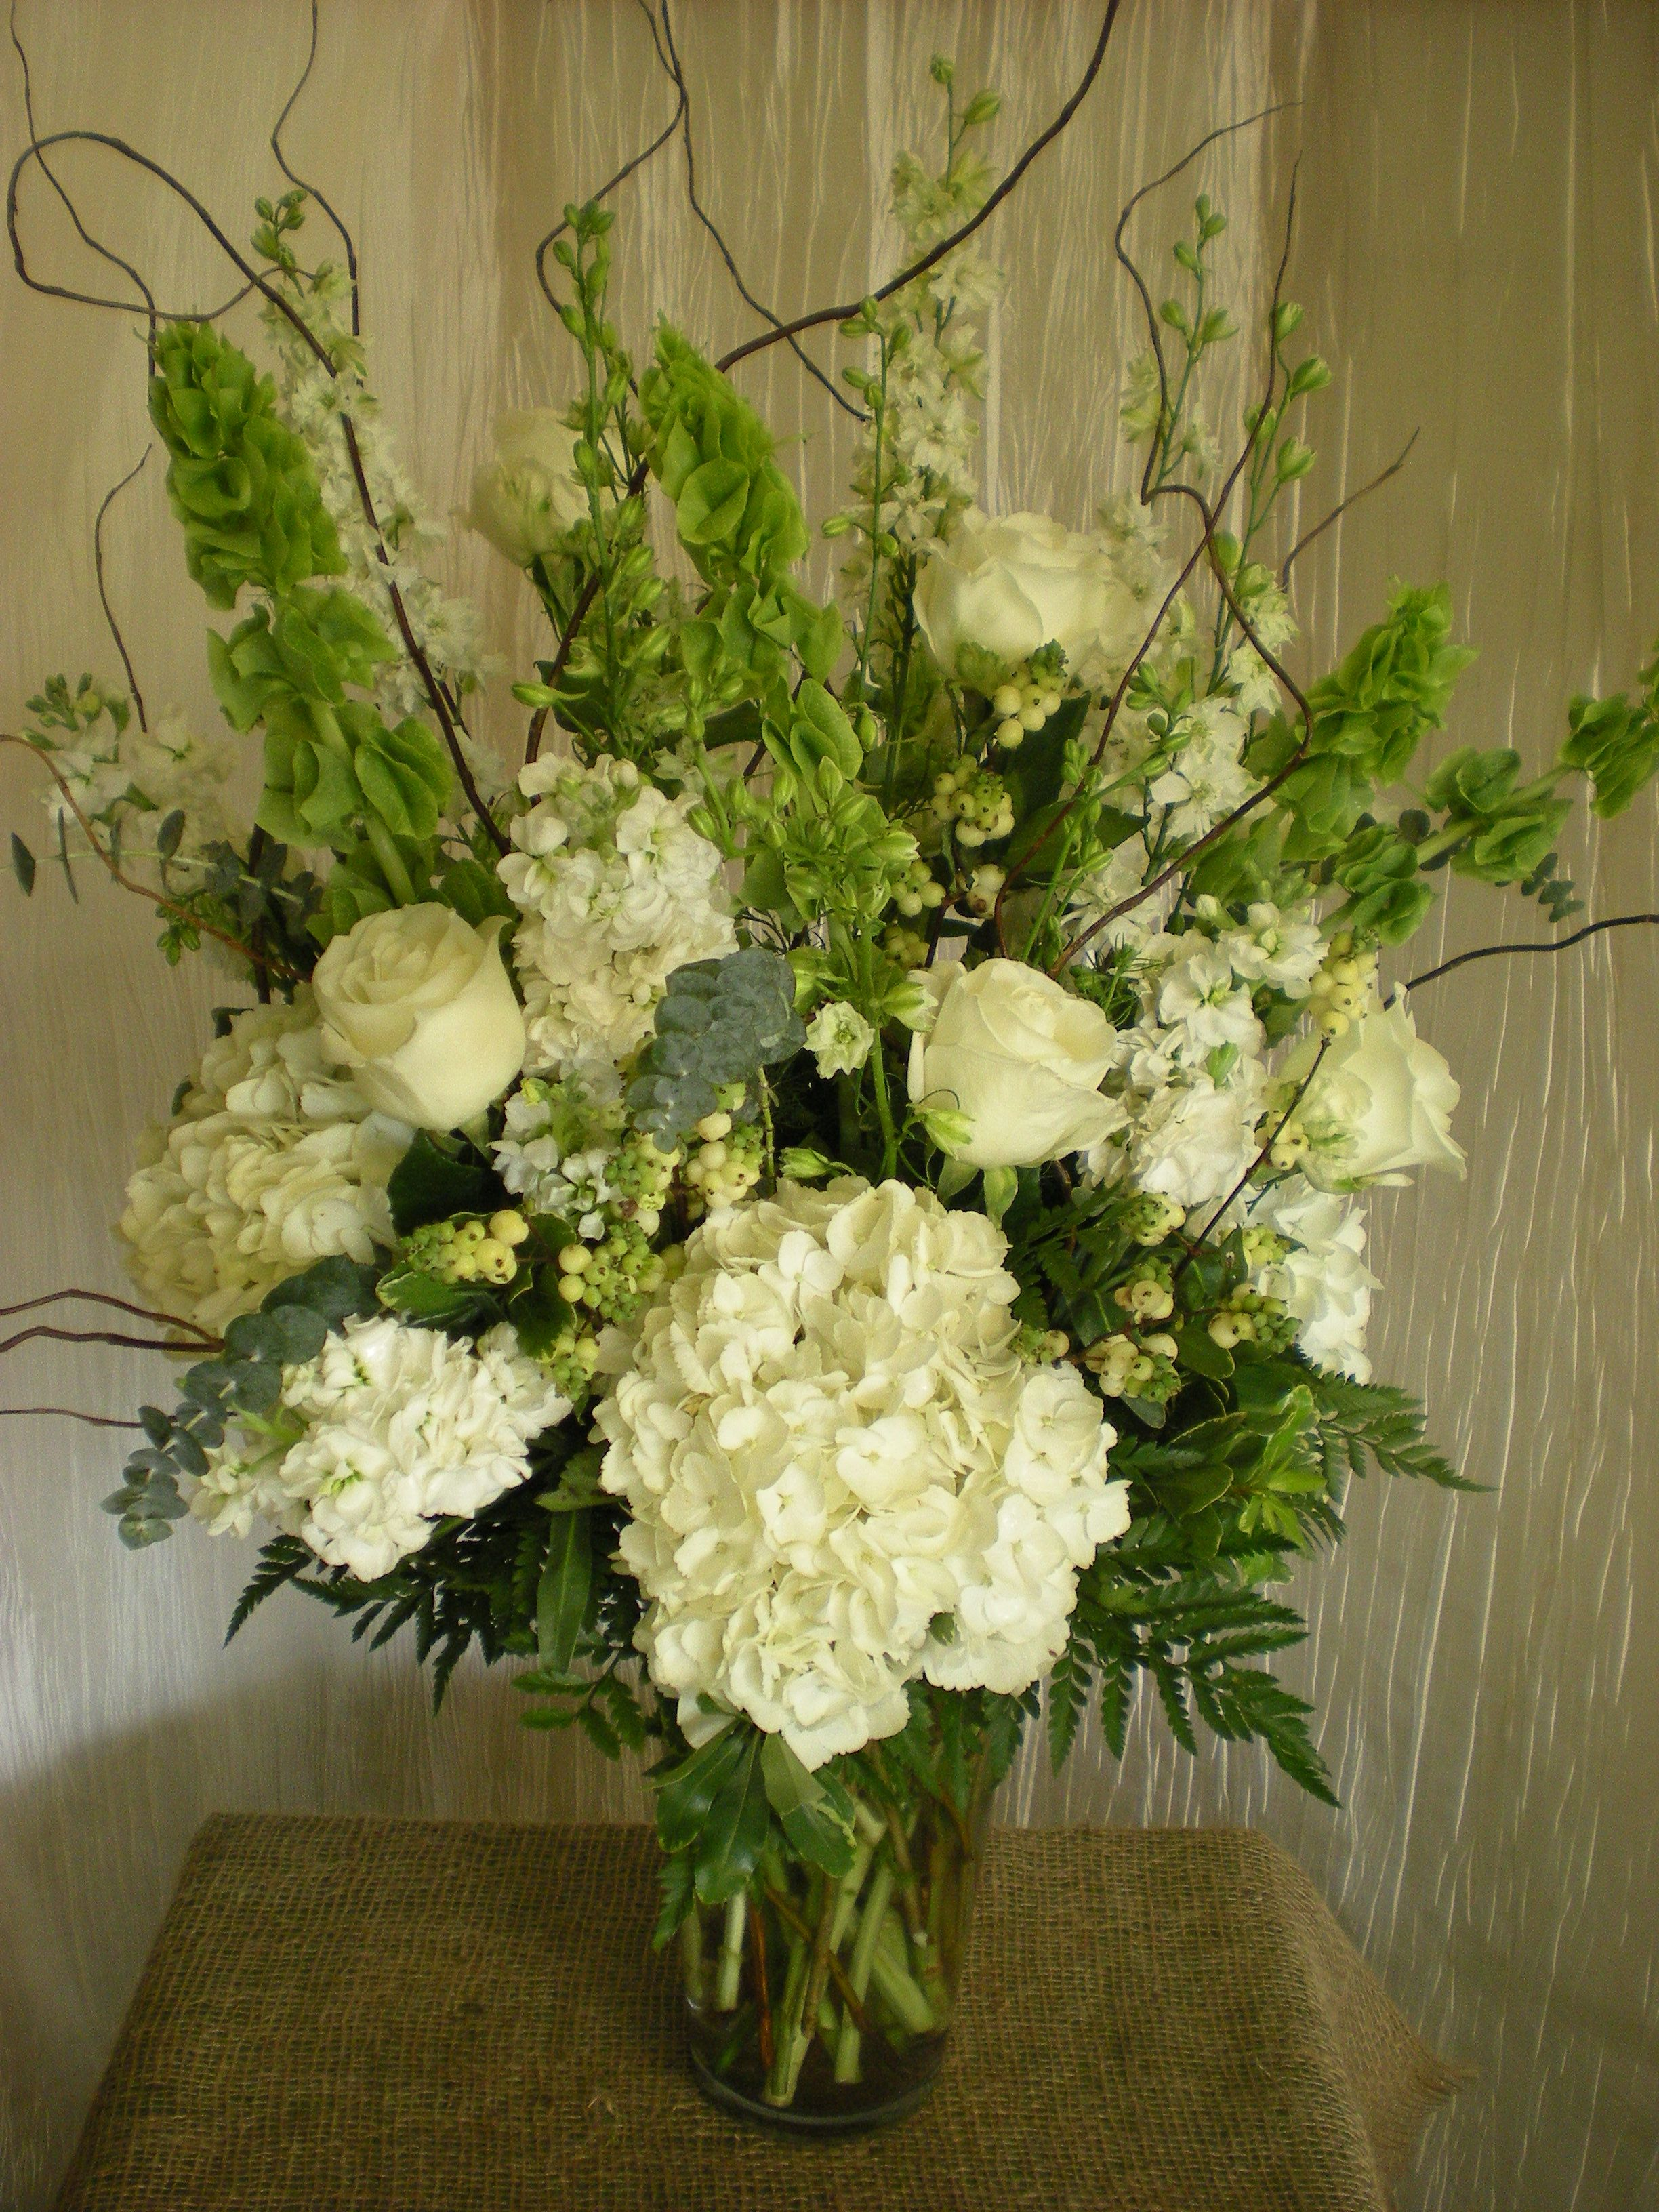 Ireland Coffee Table Book Lovely Head Table Arrangement Idea With Bells Of Ireland The